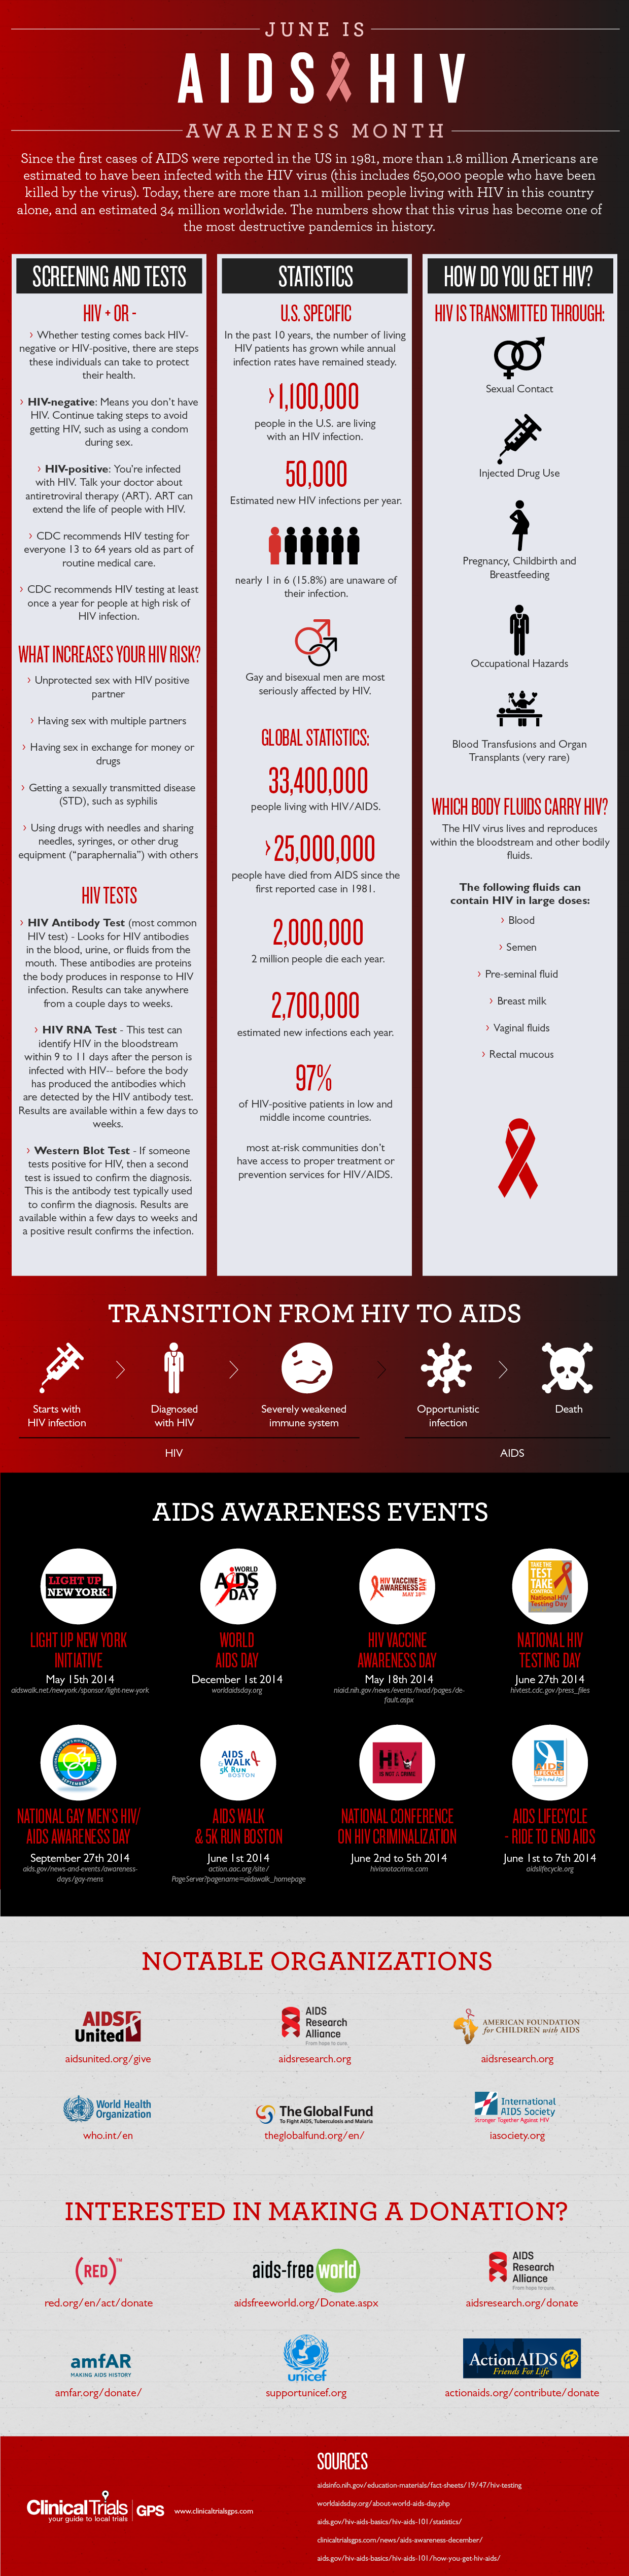 aids awareness essay essay best ideas about aids statistics hiv  best ideas about aids statistics hiv facts aids 17 best ideas about aids statistics hiv facts